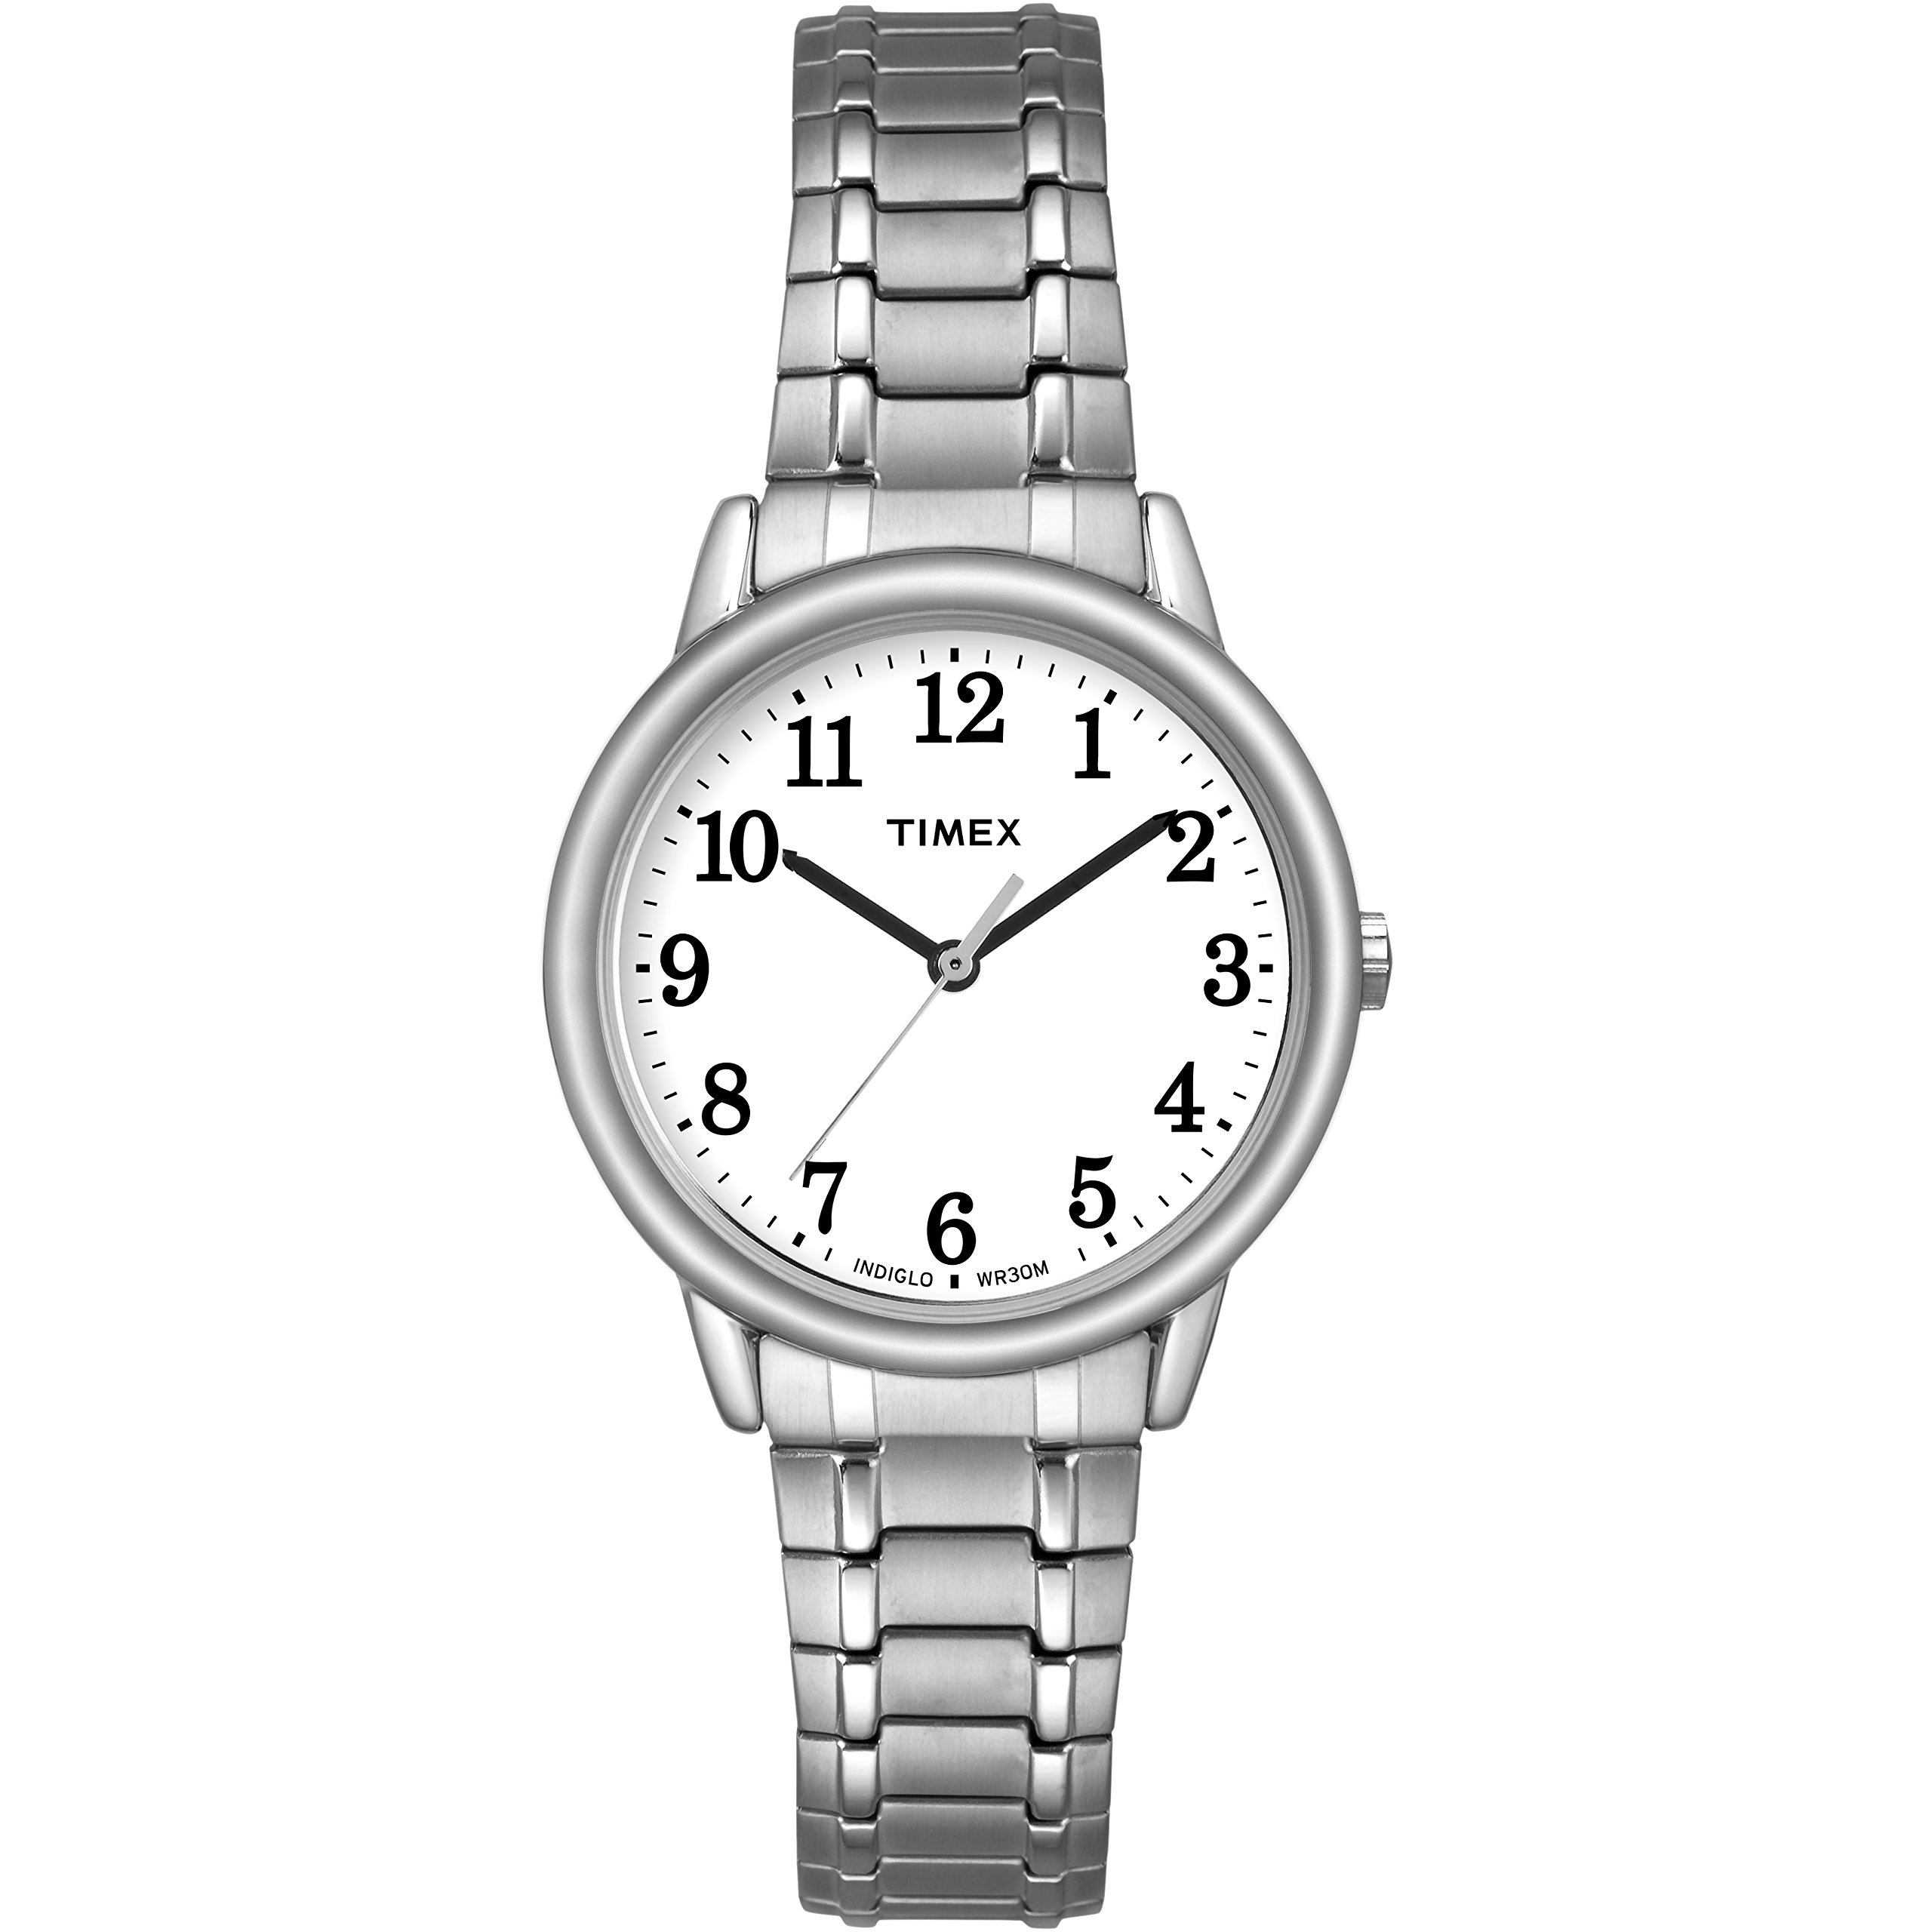 Timex Women Easy Reader | Silver-Tone w White Dial Indiglo Watch TW2P78500 by Timex